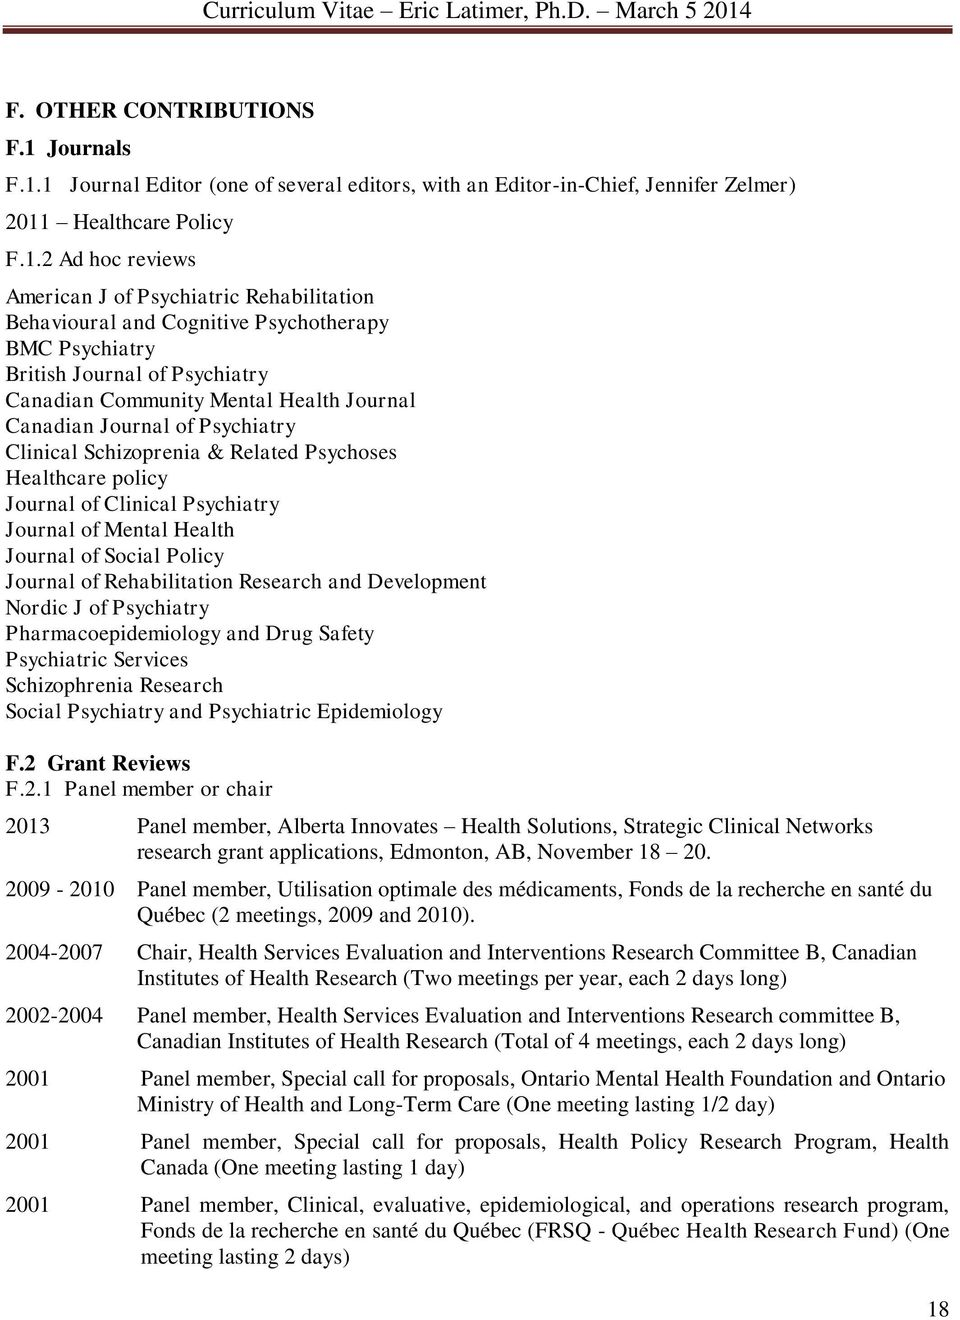 1 Journal Editor (one of several editors, with an Editor-in-Chief, Jennifer Zelmer) 2011 Healthcare Policy F.1.2 Ad hoc reviews American J of Psychiatric Rehabilitation Behavioural and Cognitive